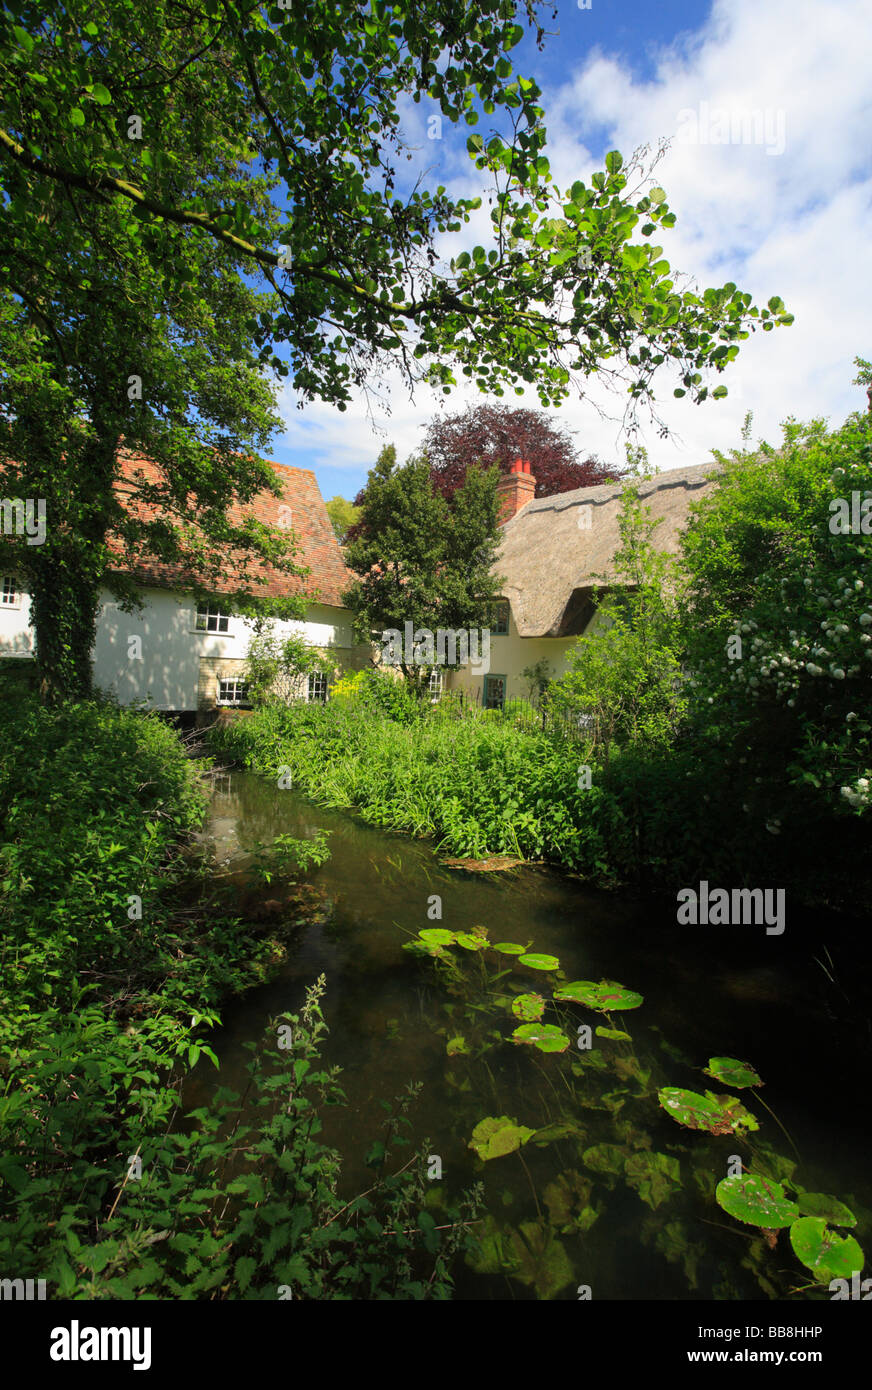 Hinxton watermill on the River Cam in Cambridgeshire. - Stock Image